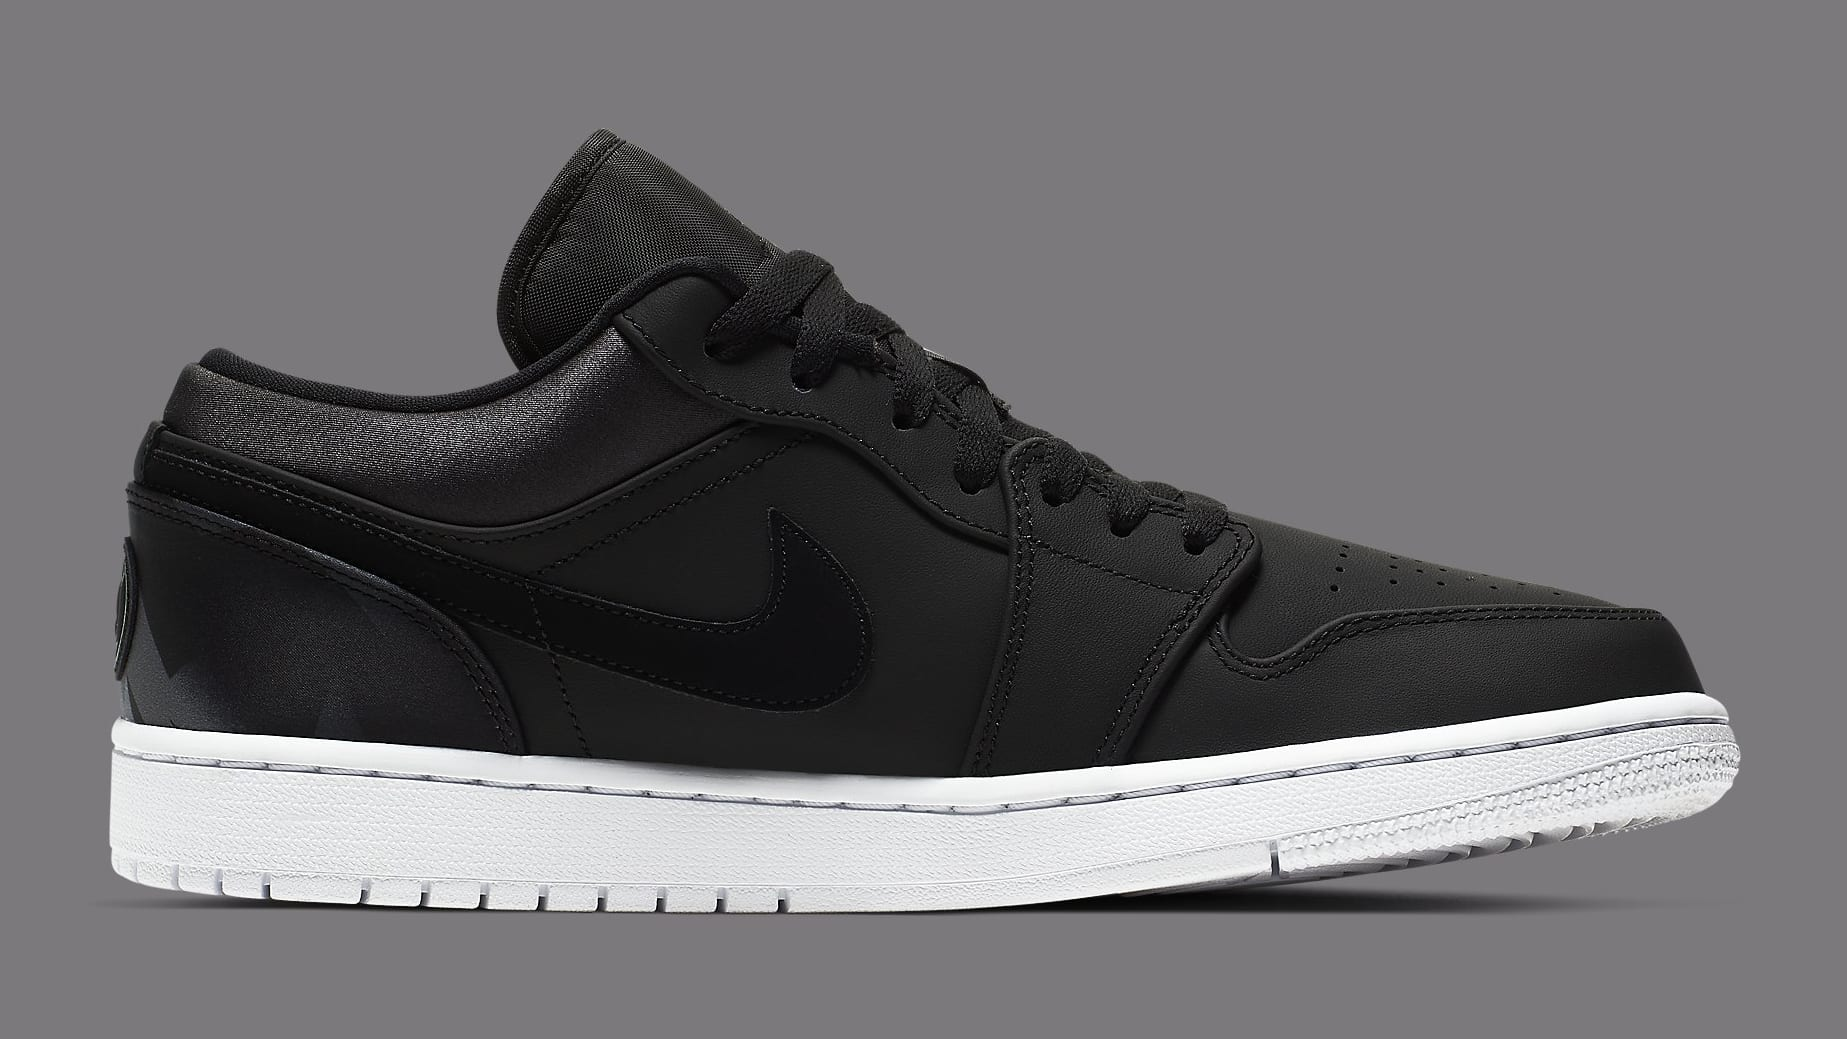 Air Jordan 1 Low PSG Release Date CK0687-001 Medial